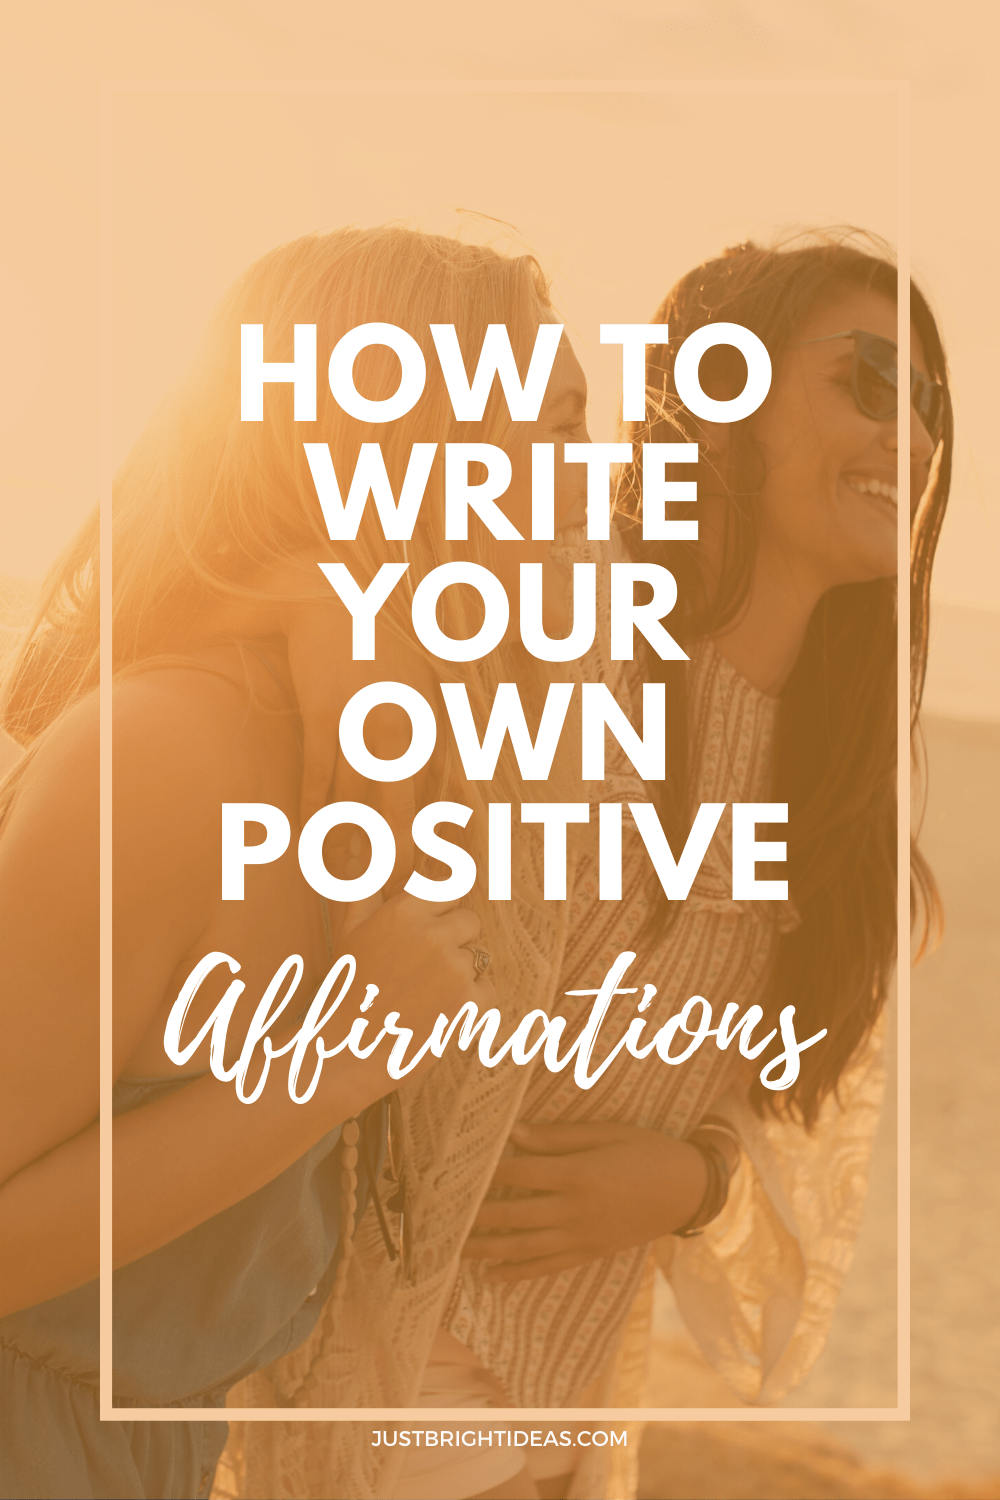 Find out how easy it is to write your own affirmations for your meditation and manifesting rituals